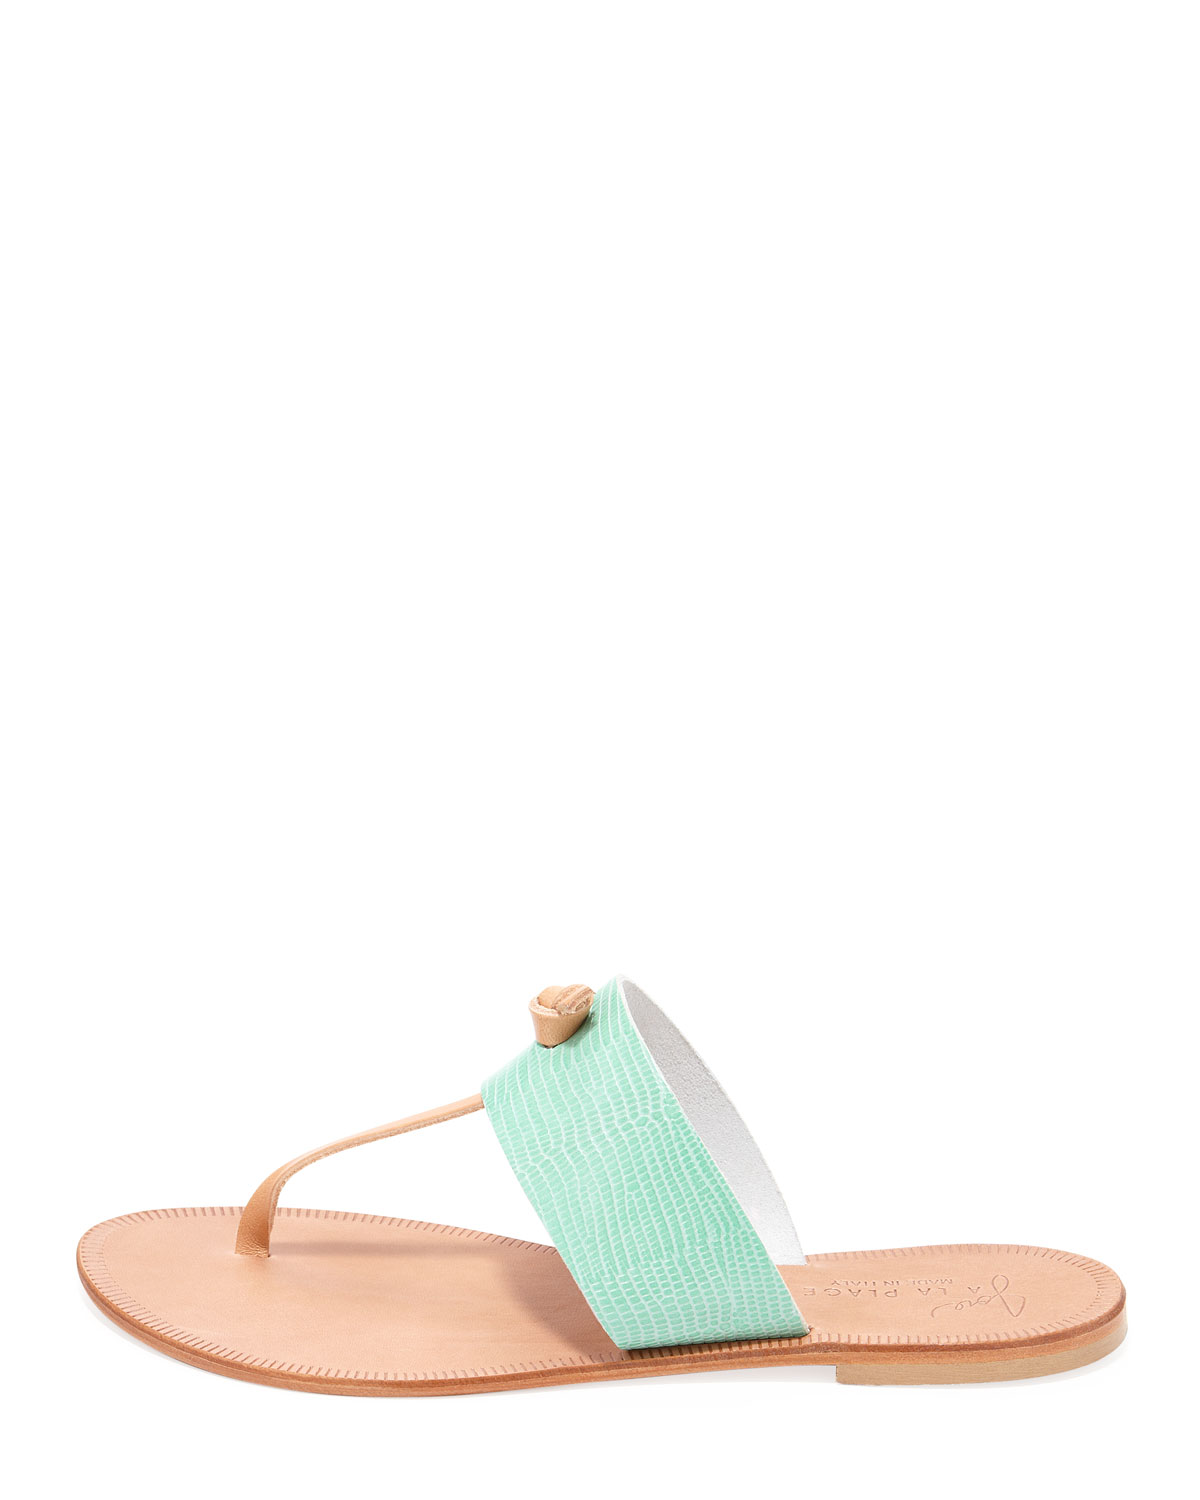 750f15500fb Lyst - Joie Nice Tstrap Thong Flat Sandal in Green